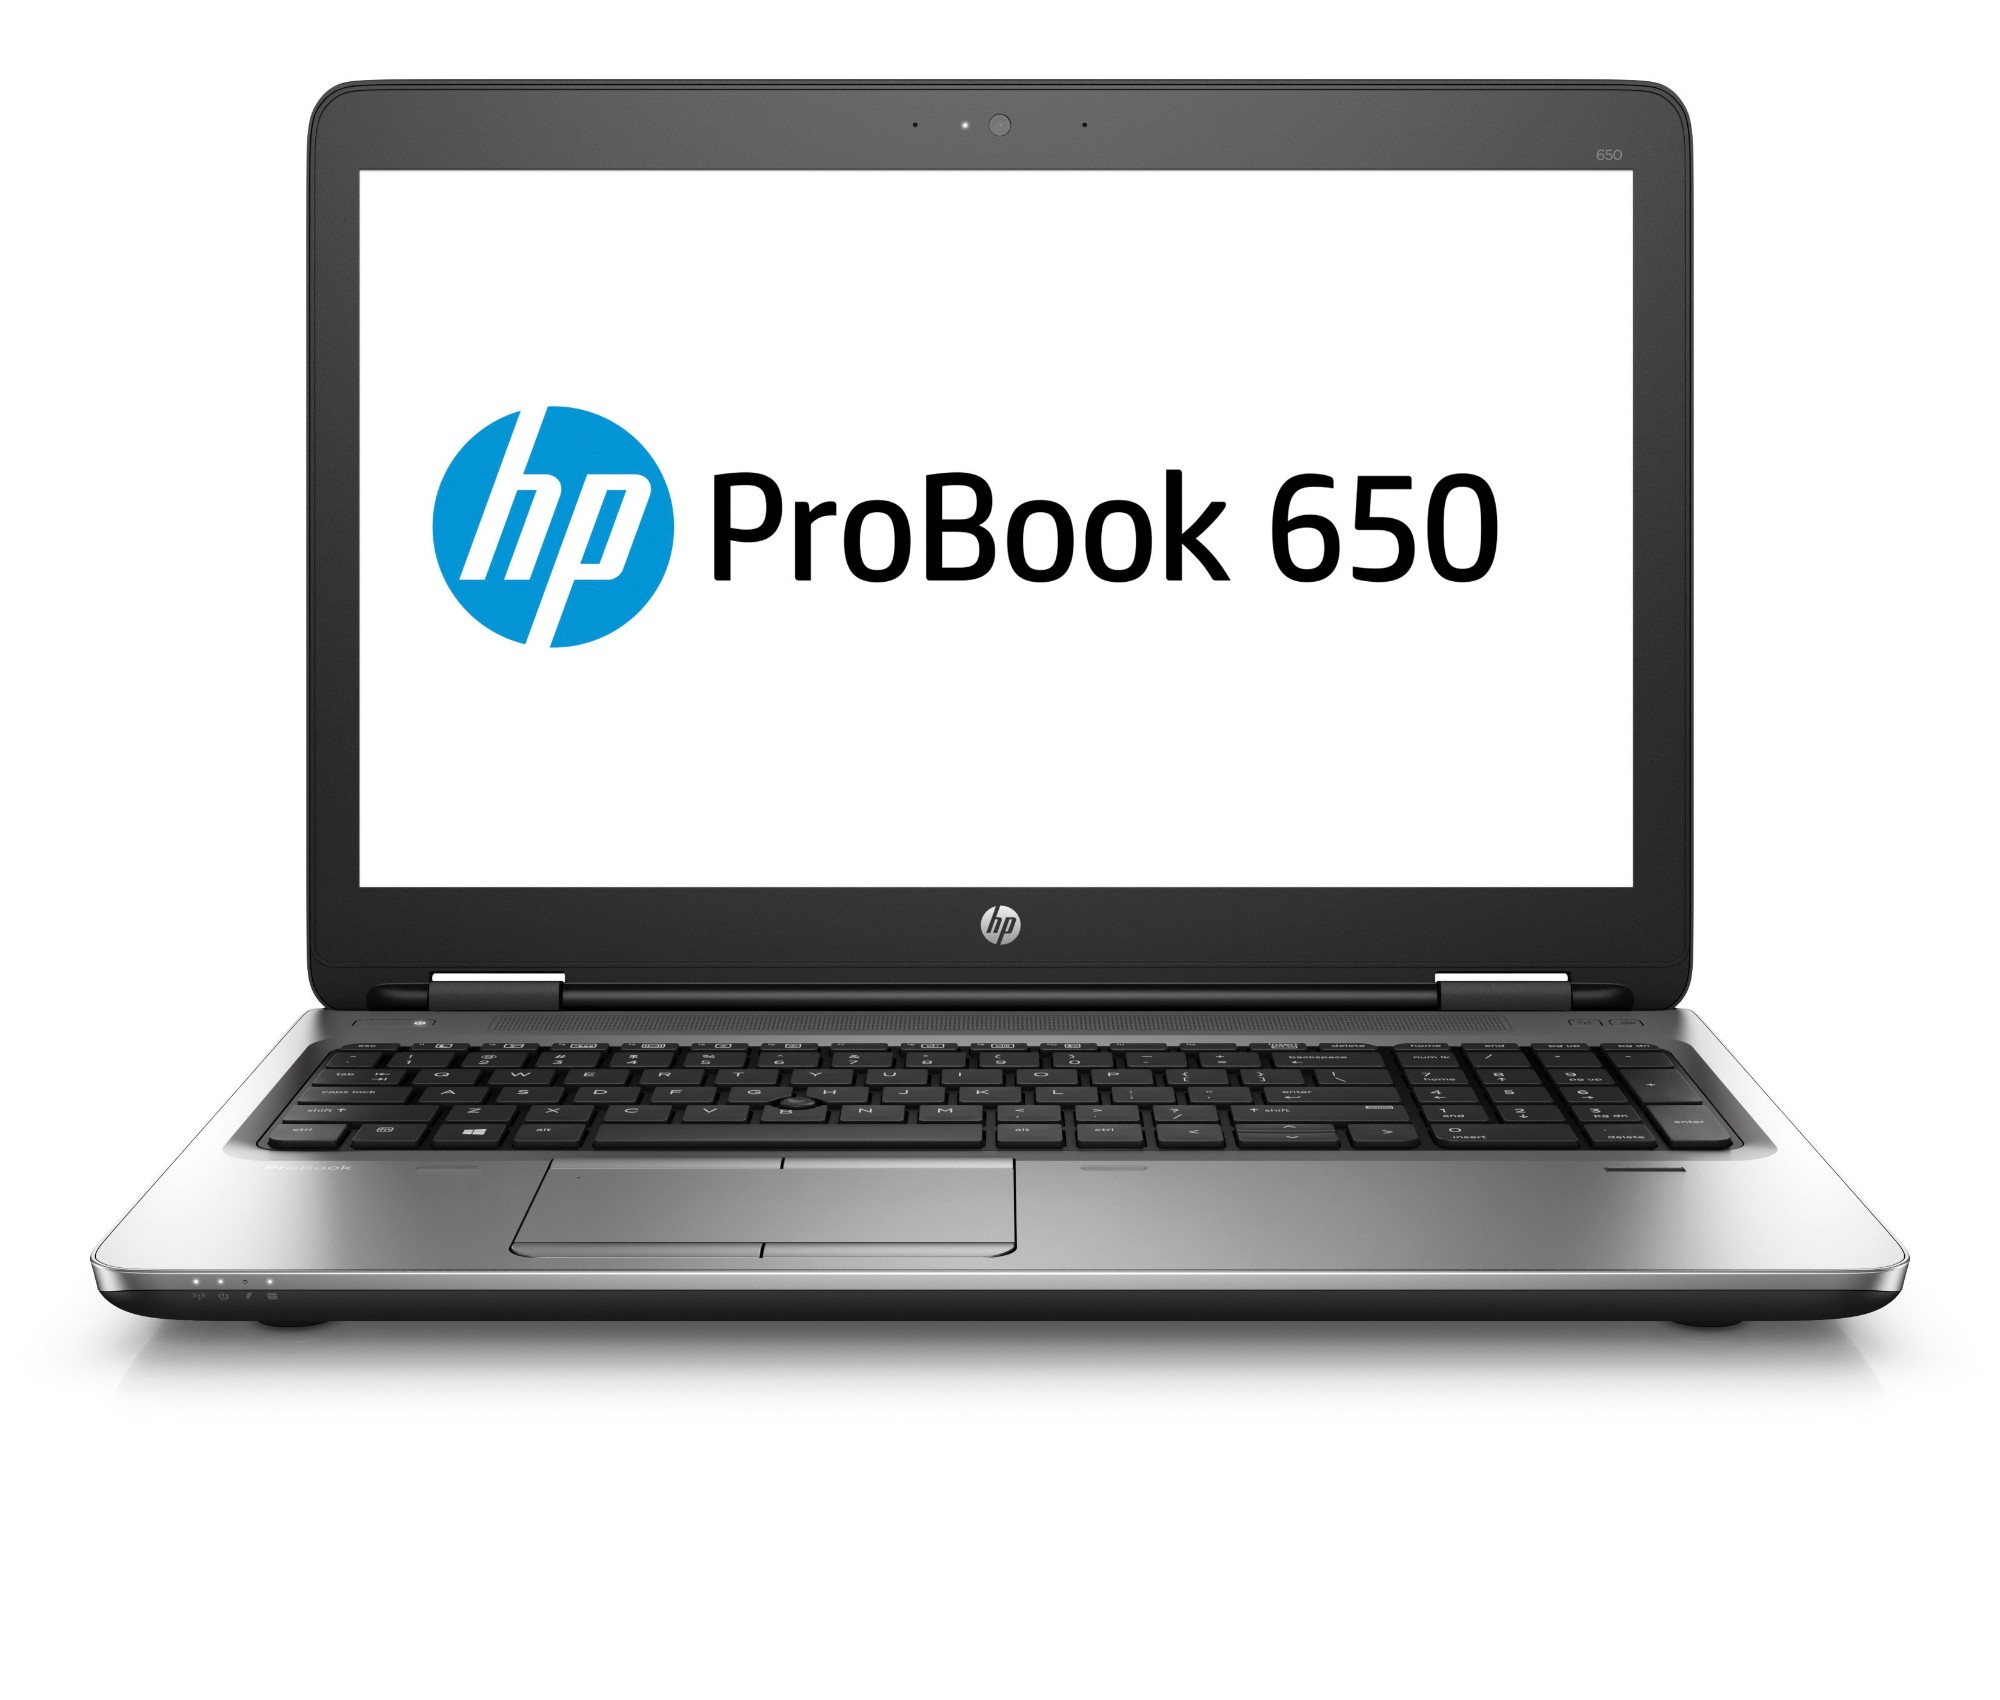 HP ProBook 650 G2 Notebook PC